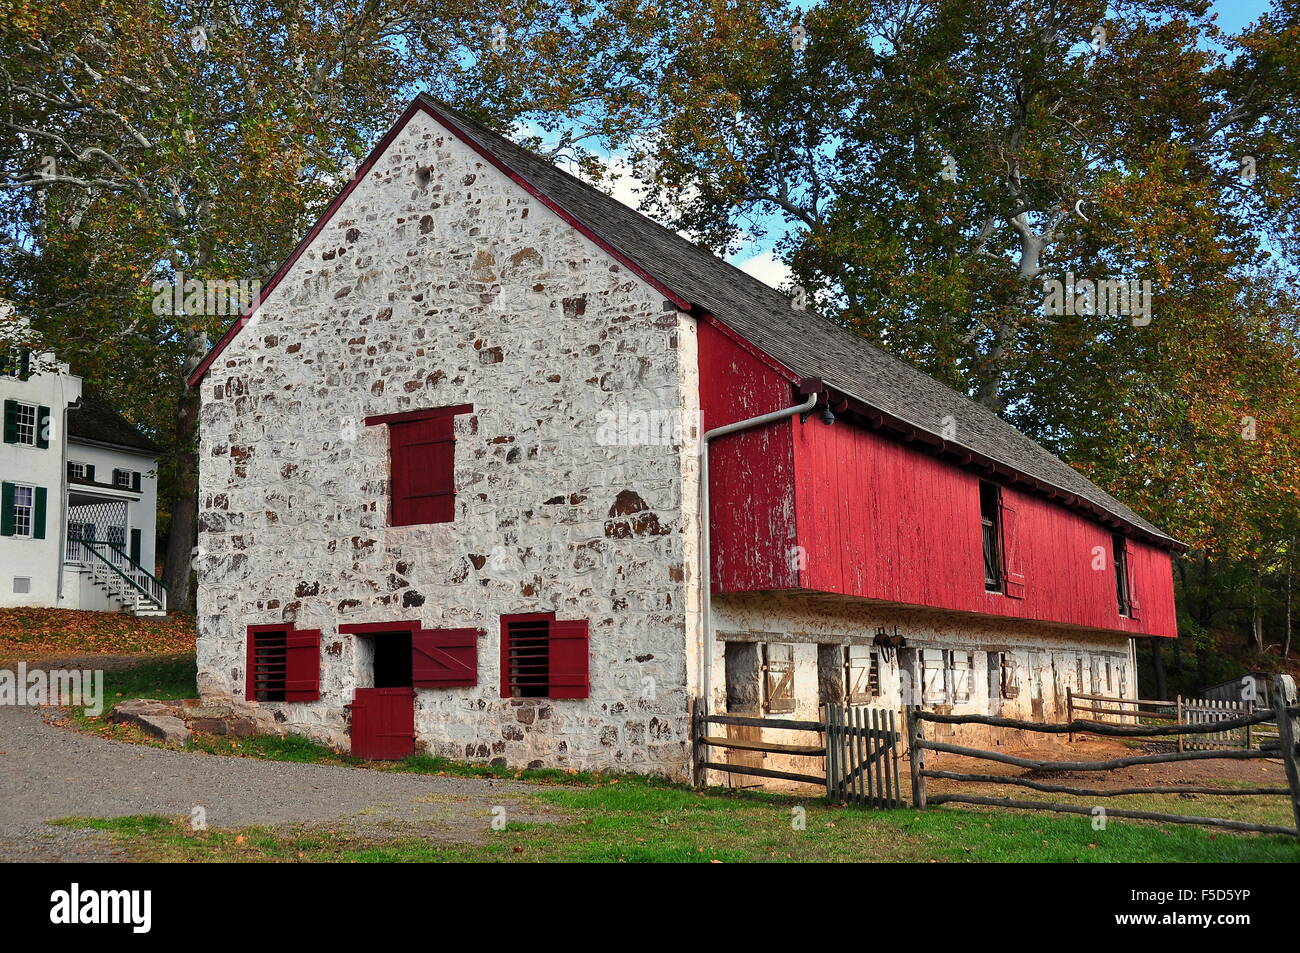 Hopewell Furnace Pennsylvania The Stone And Wooden Barn Housed 36 Draft Animals At Natl Historic Site